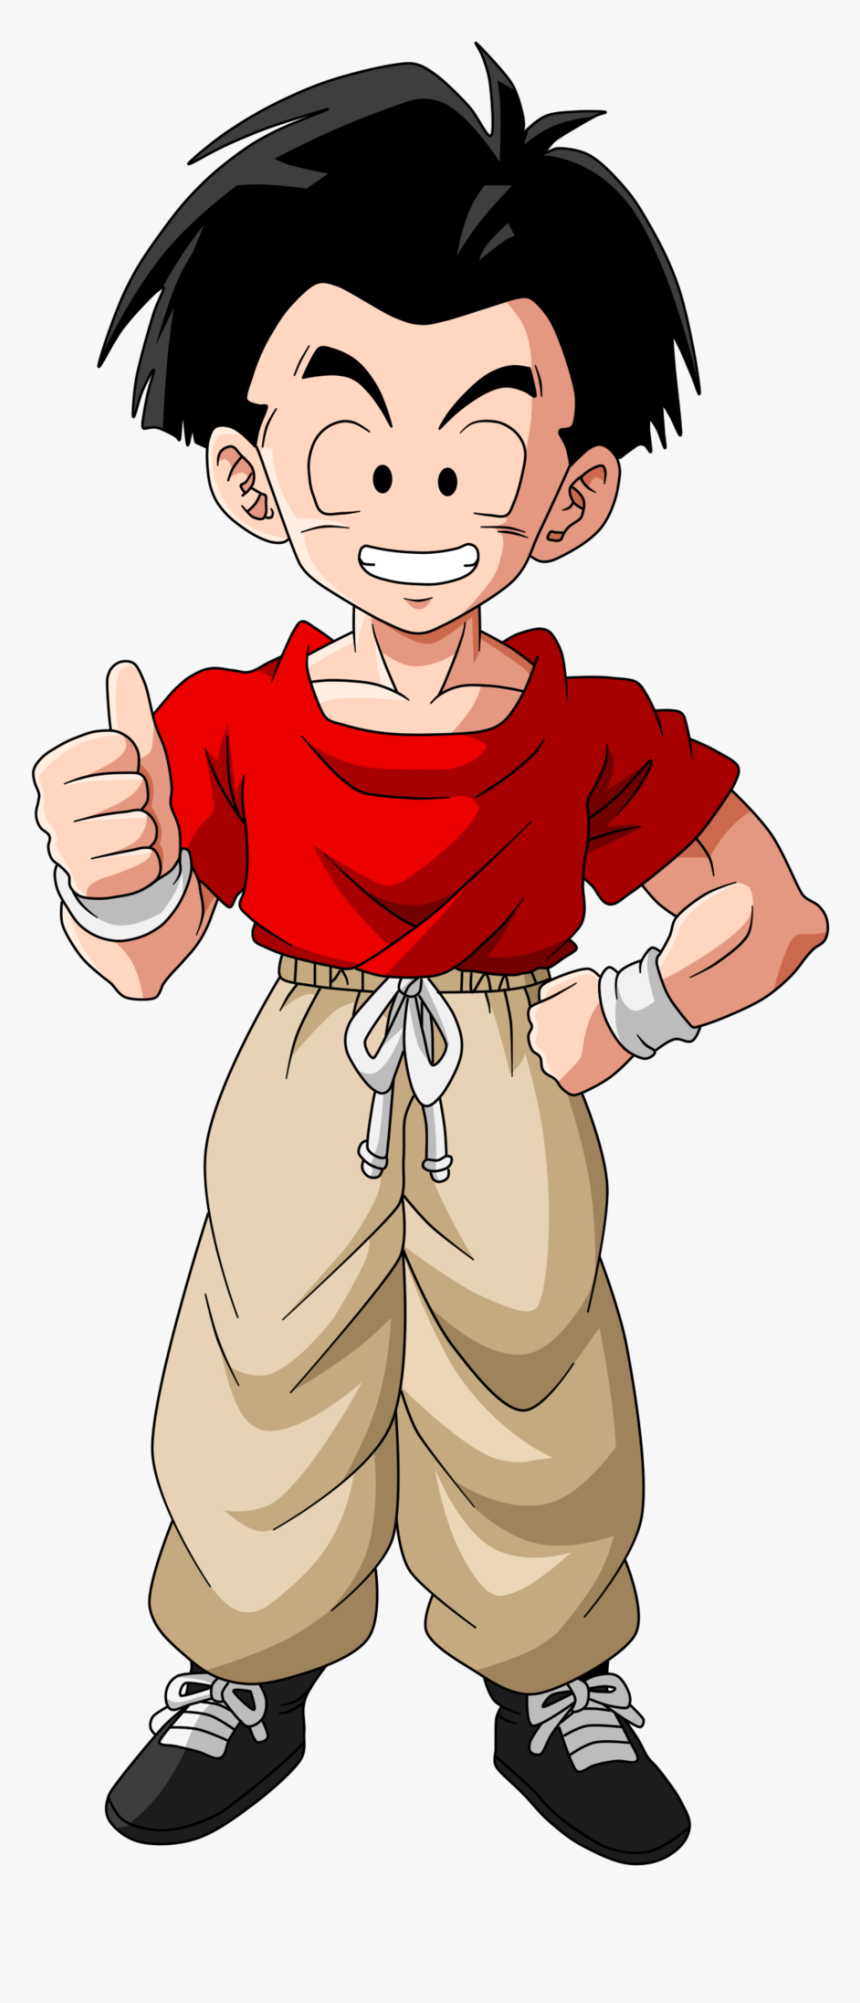 Krillin With Hair - Dragon Ball Krillin With Hair, HD Png Download, Free Download